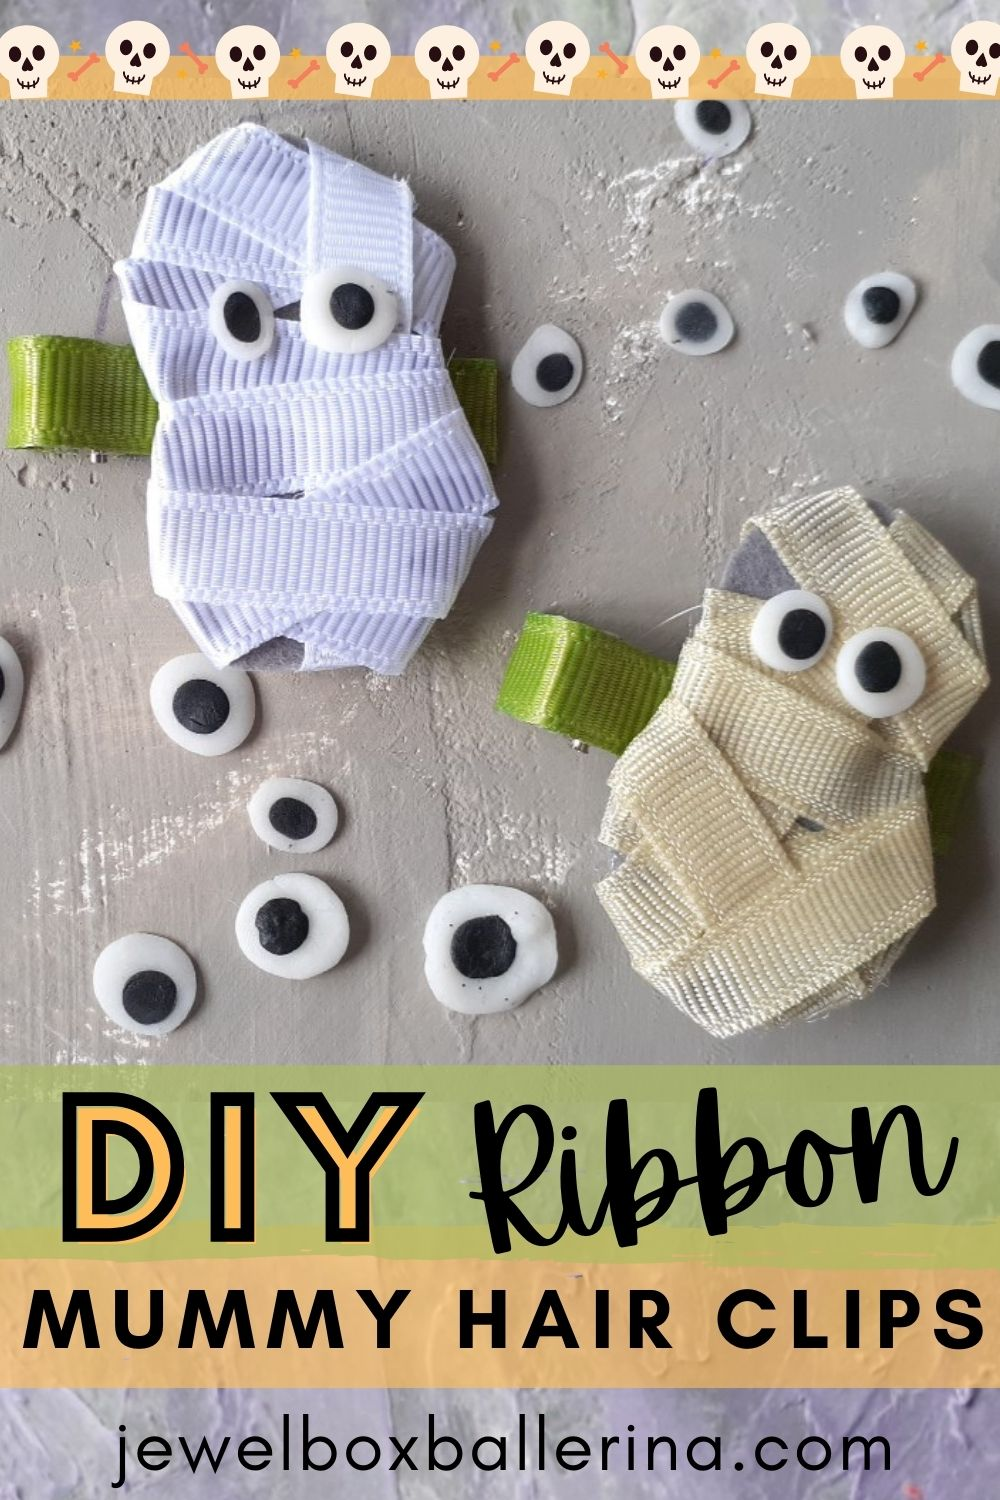 How to make a mummy hair clip with ribbons